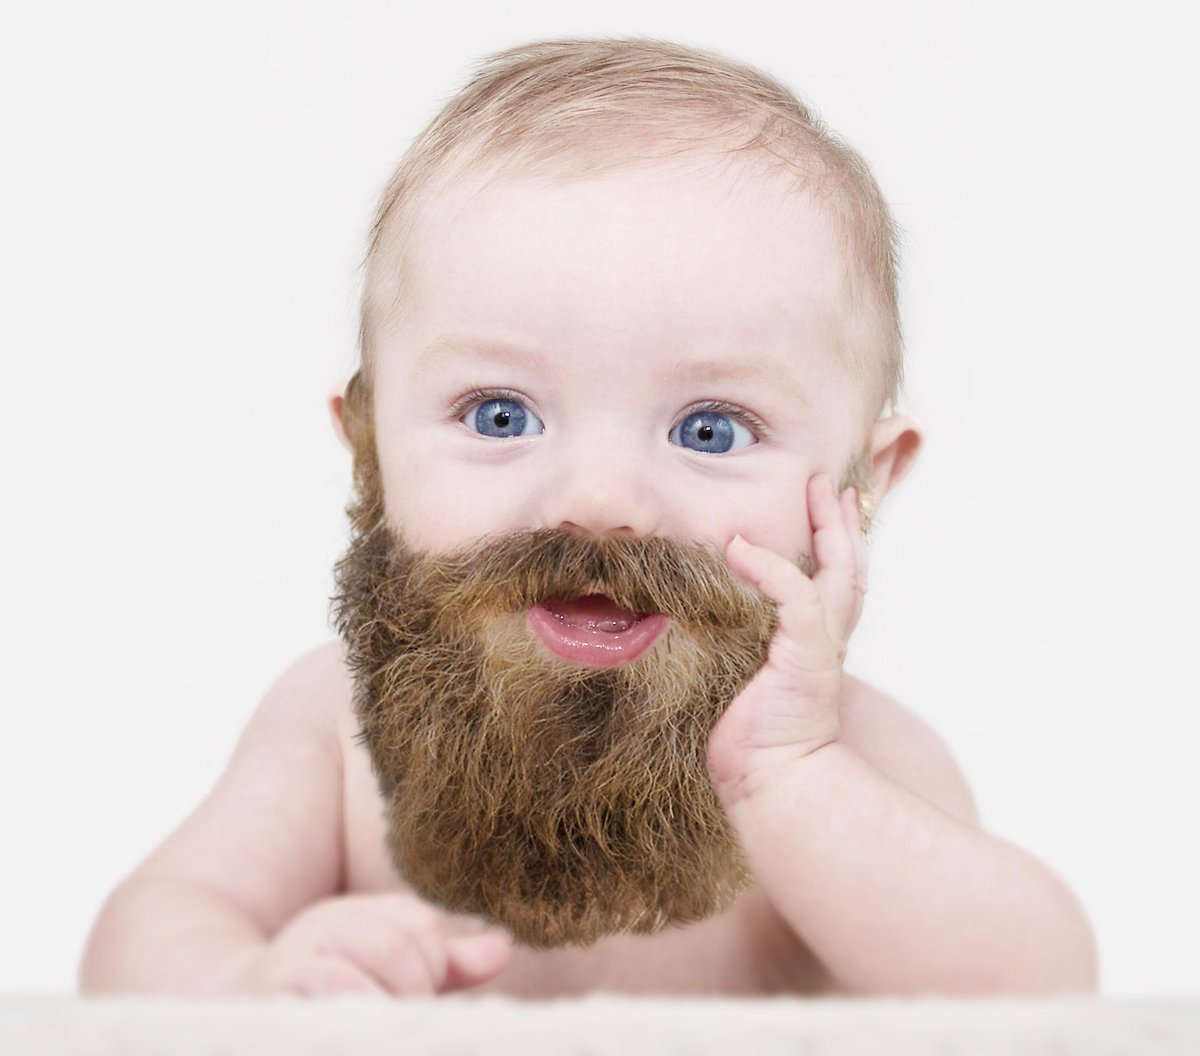 ... was right! Babies with beards are cute! http://t.co/B0aW45ifJQ